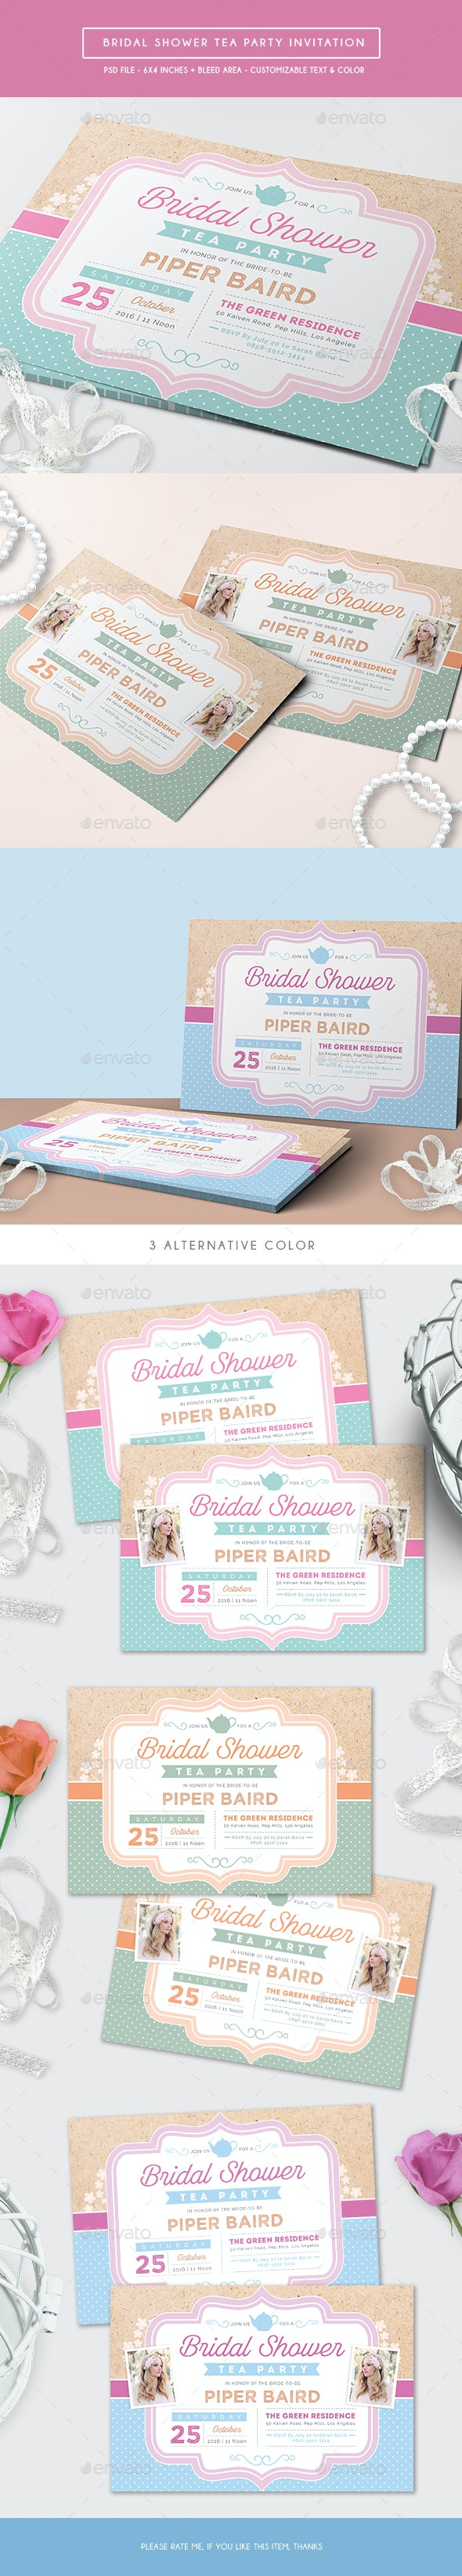 Bridal Shower Tea Party Invitation - Weddings Cards & Invites